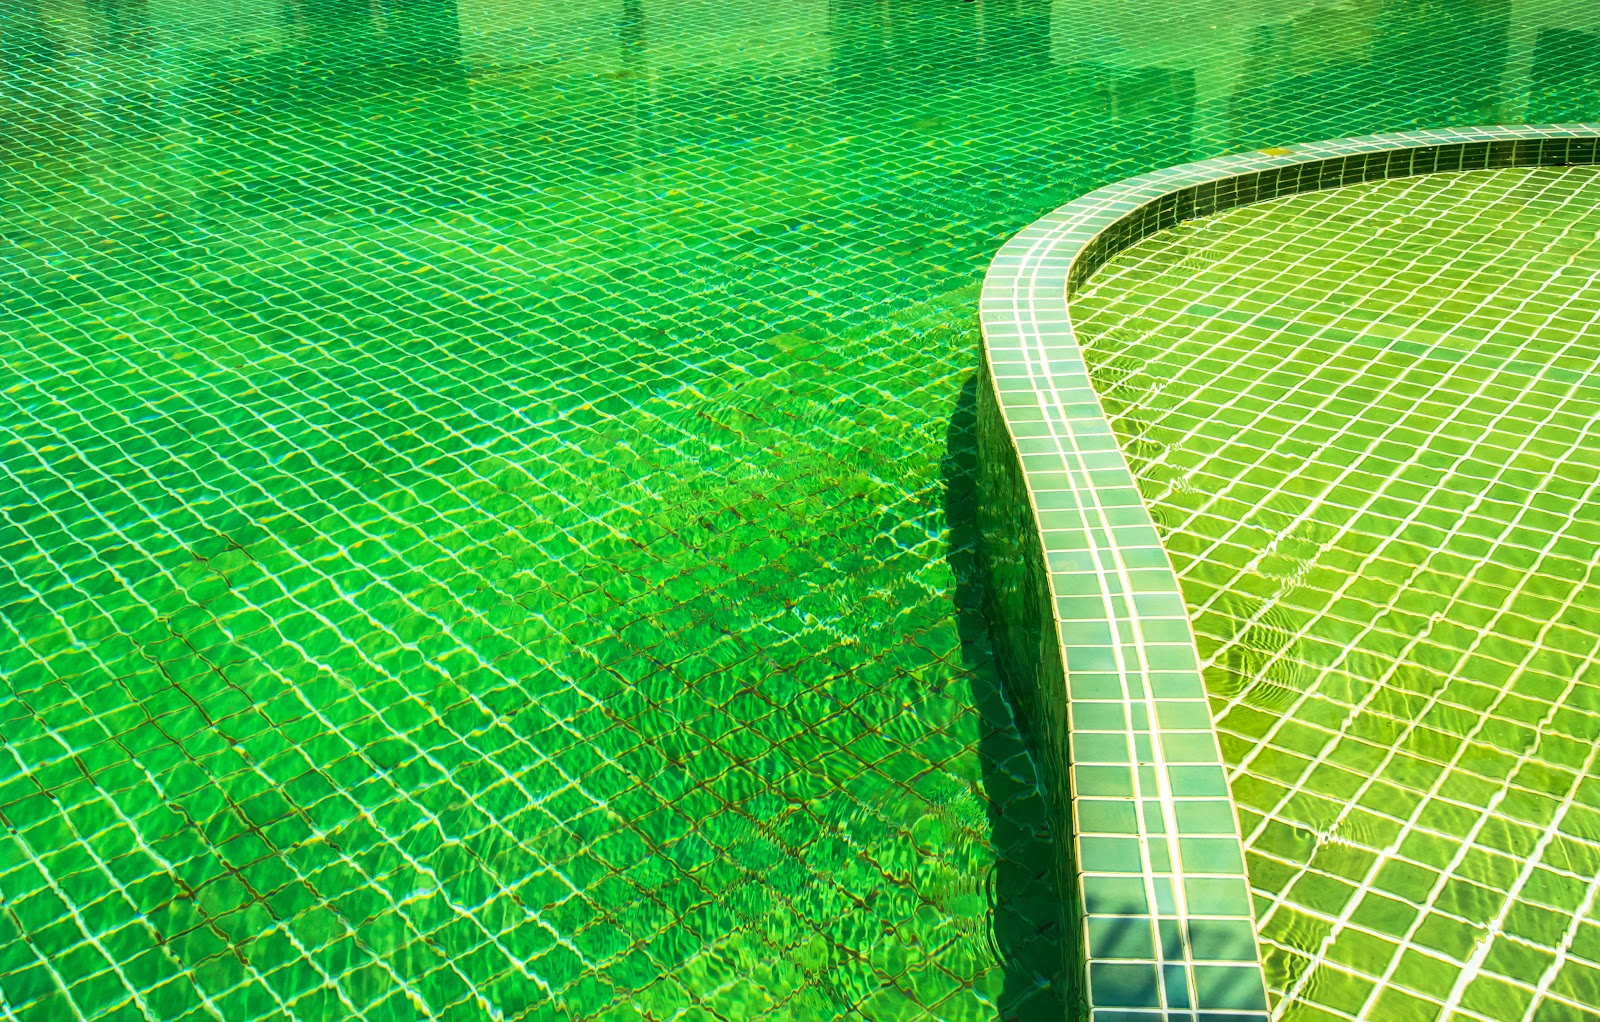 an inground swimming pool with green water in it